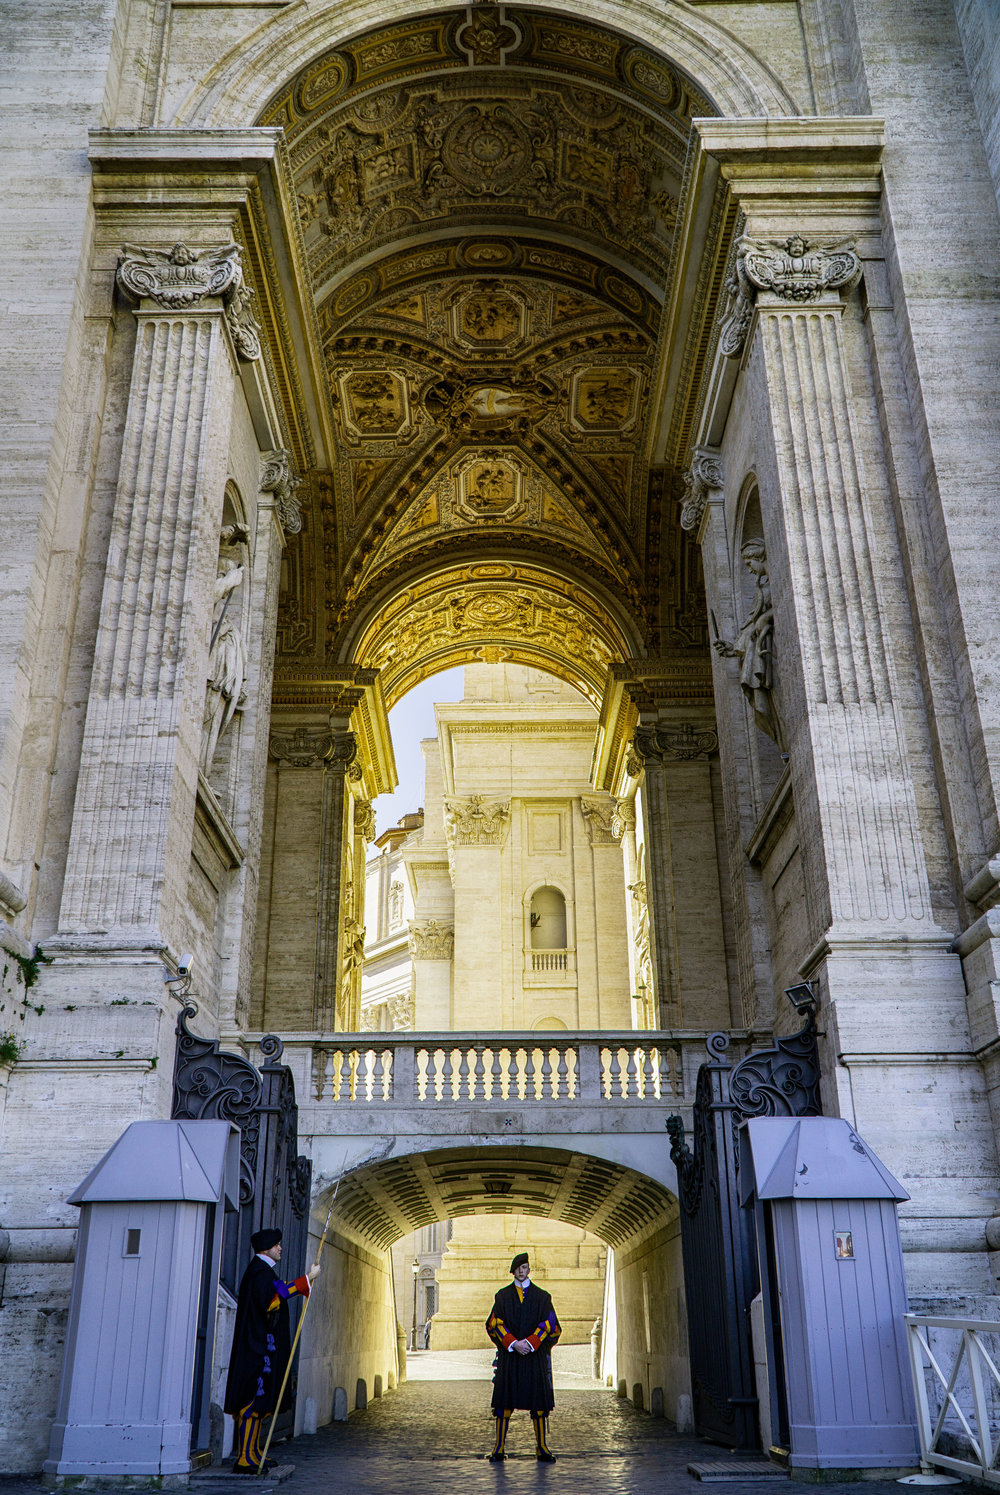 rome_vatican_city_gard_vickygood_travel_photography2sm.jpg